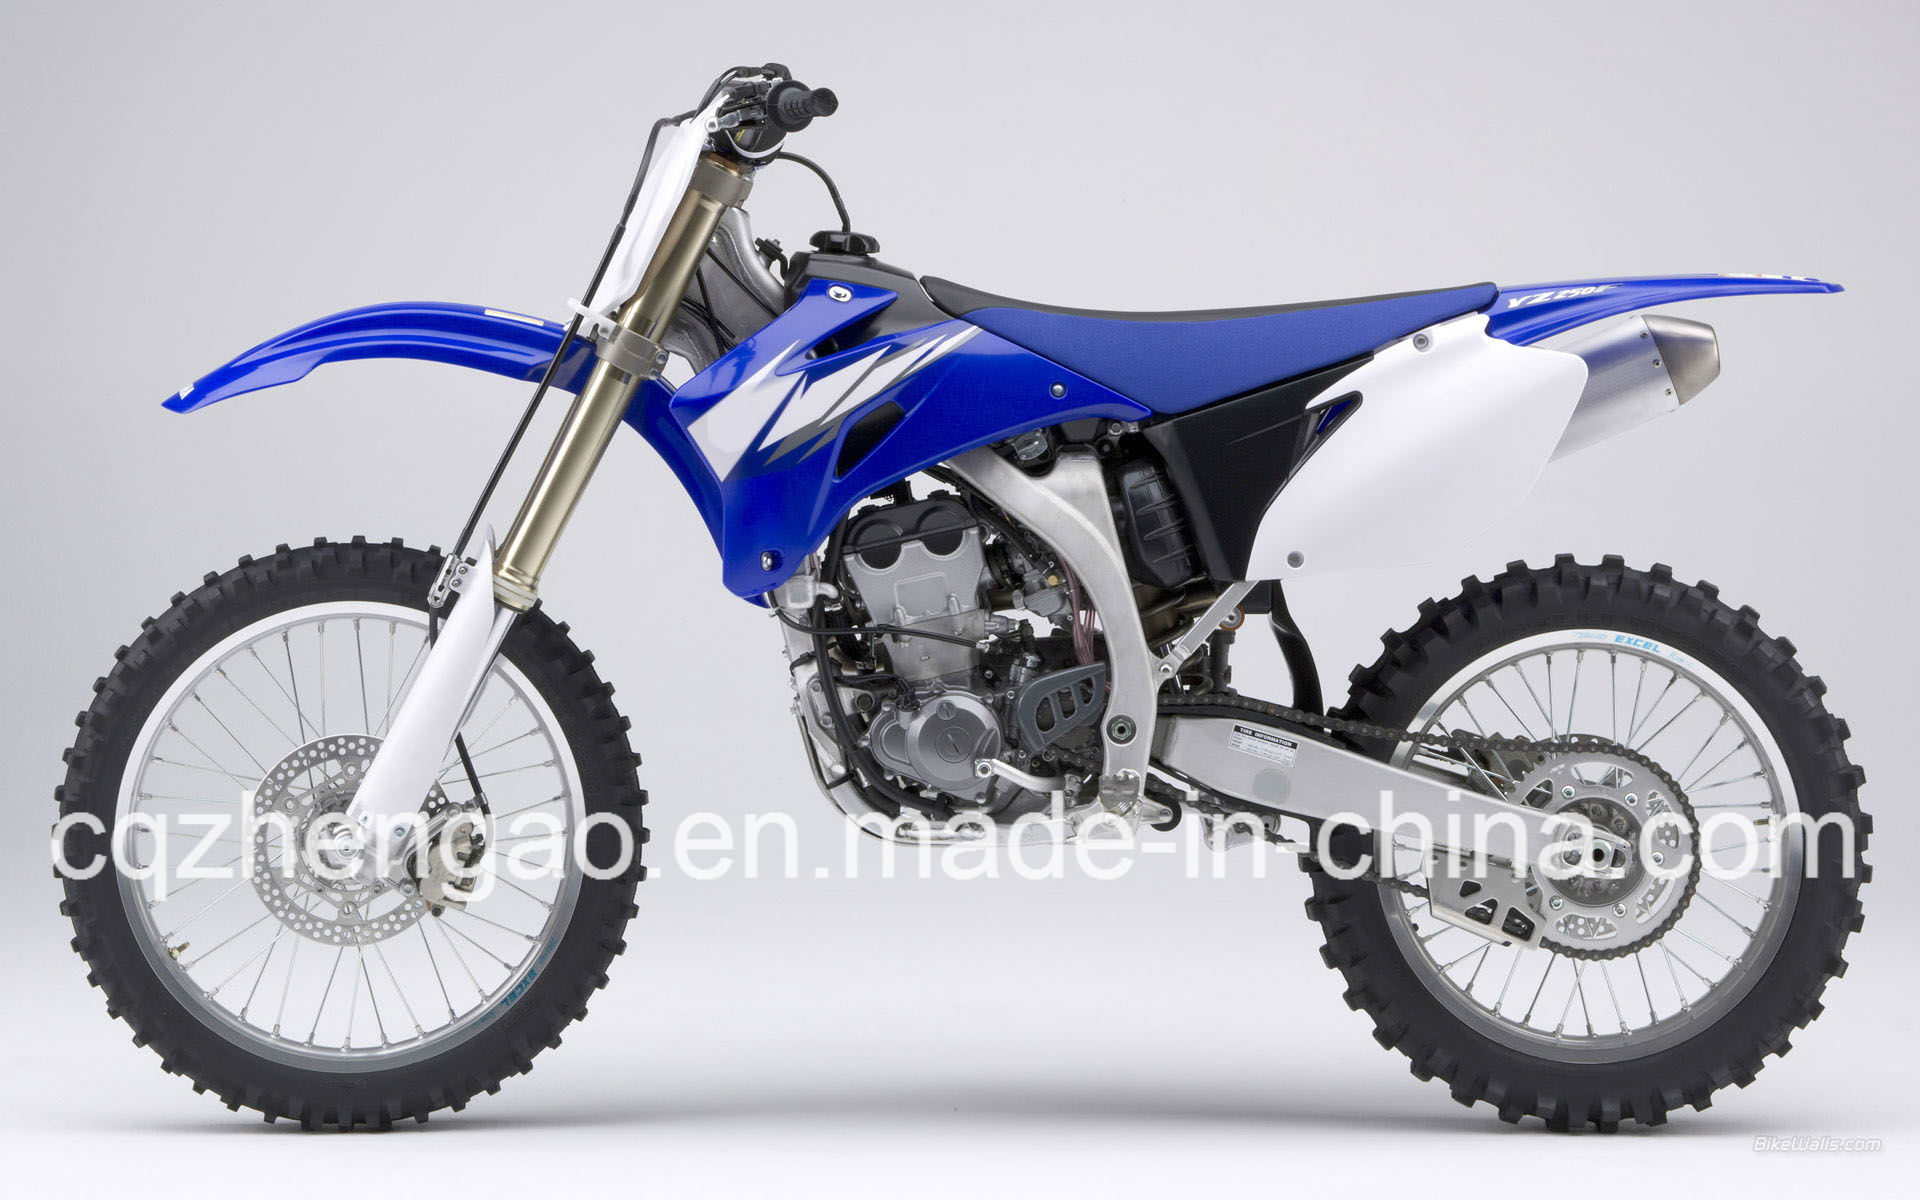 China new 250cc dirt bike yamaha yz250 moto for enduro and motocross